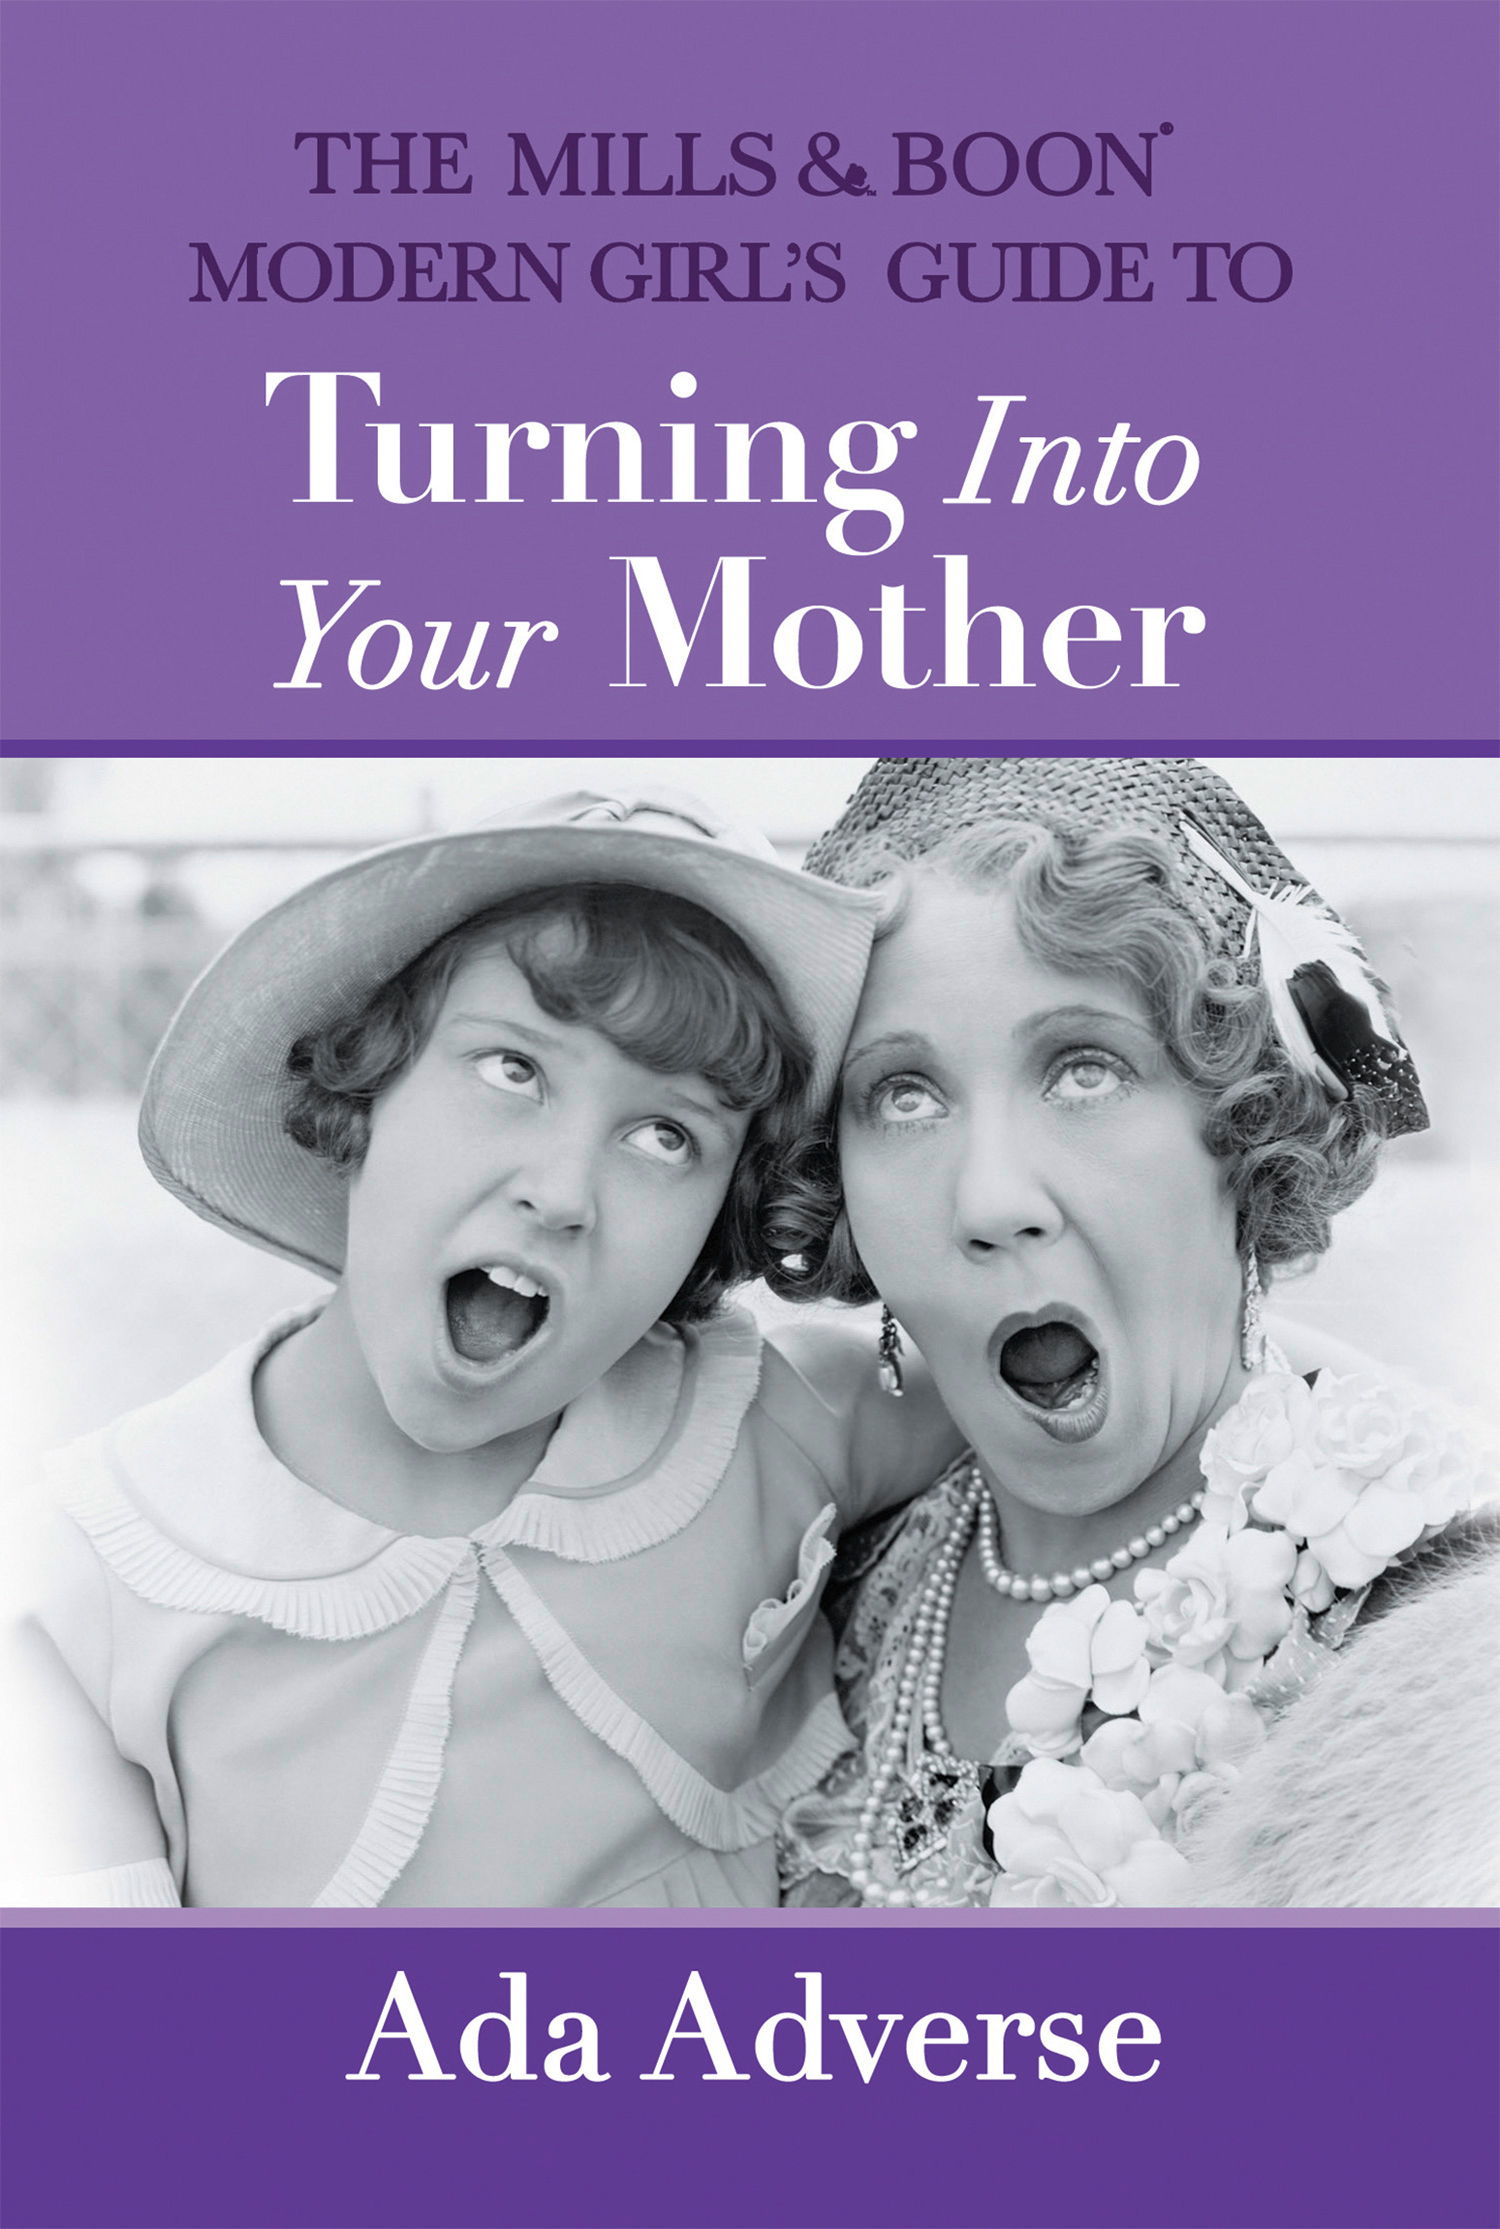 The Mills & Boon Modern Girl's Guide to Turning into Your Mother